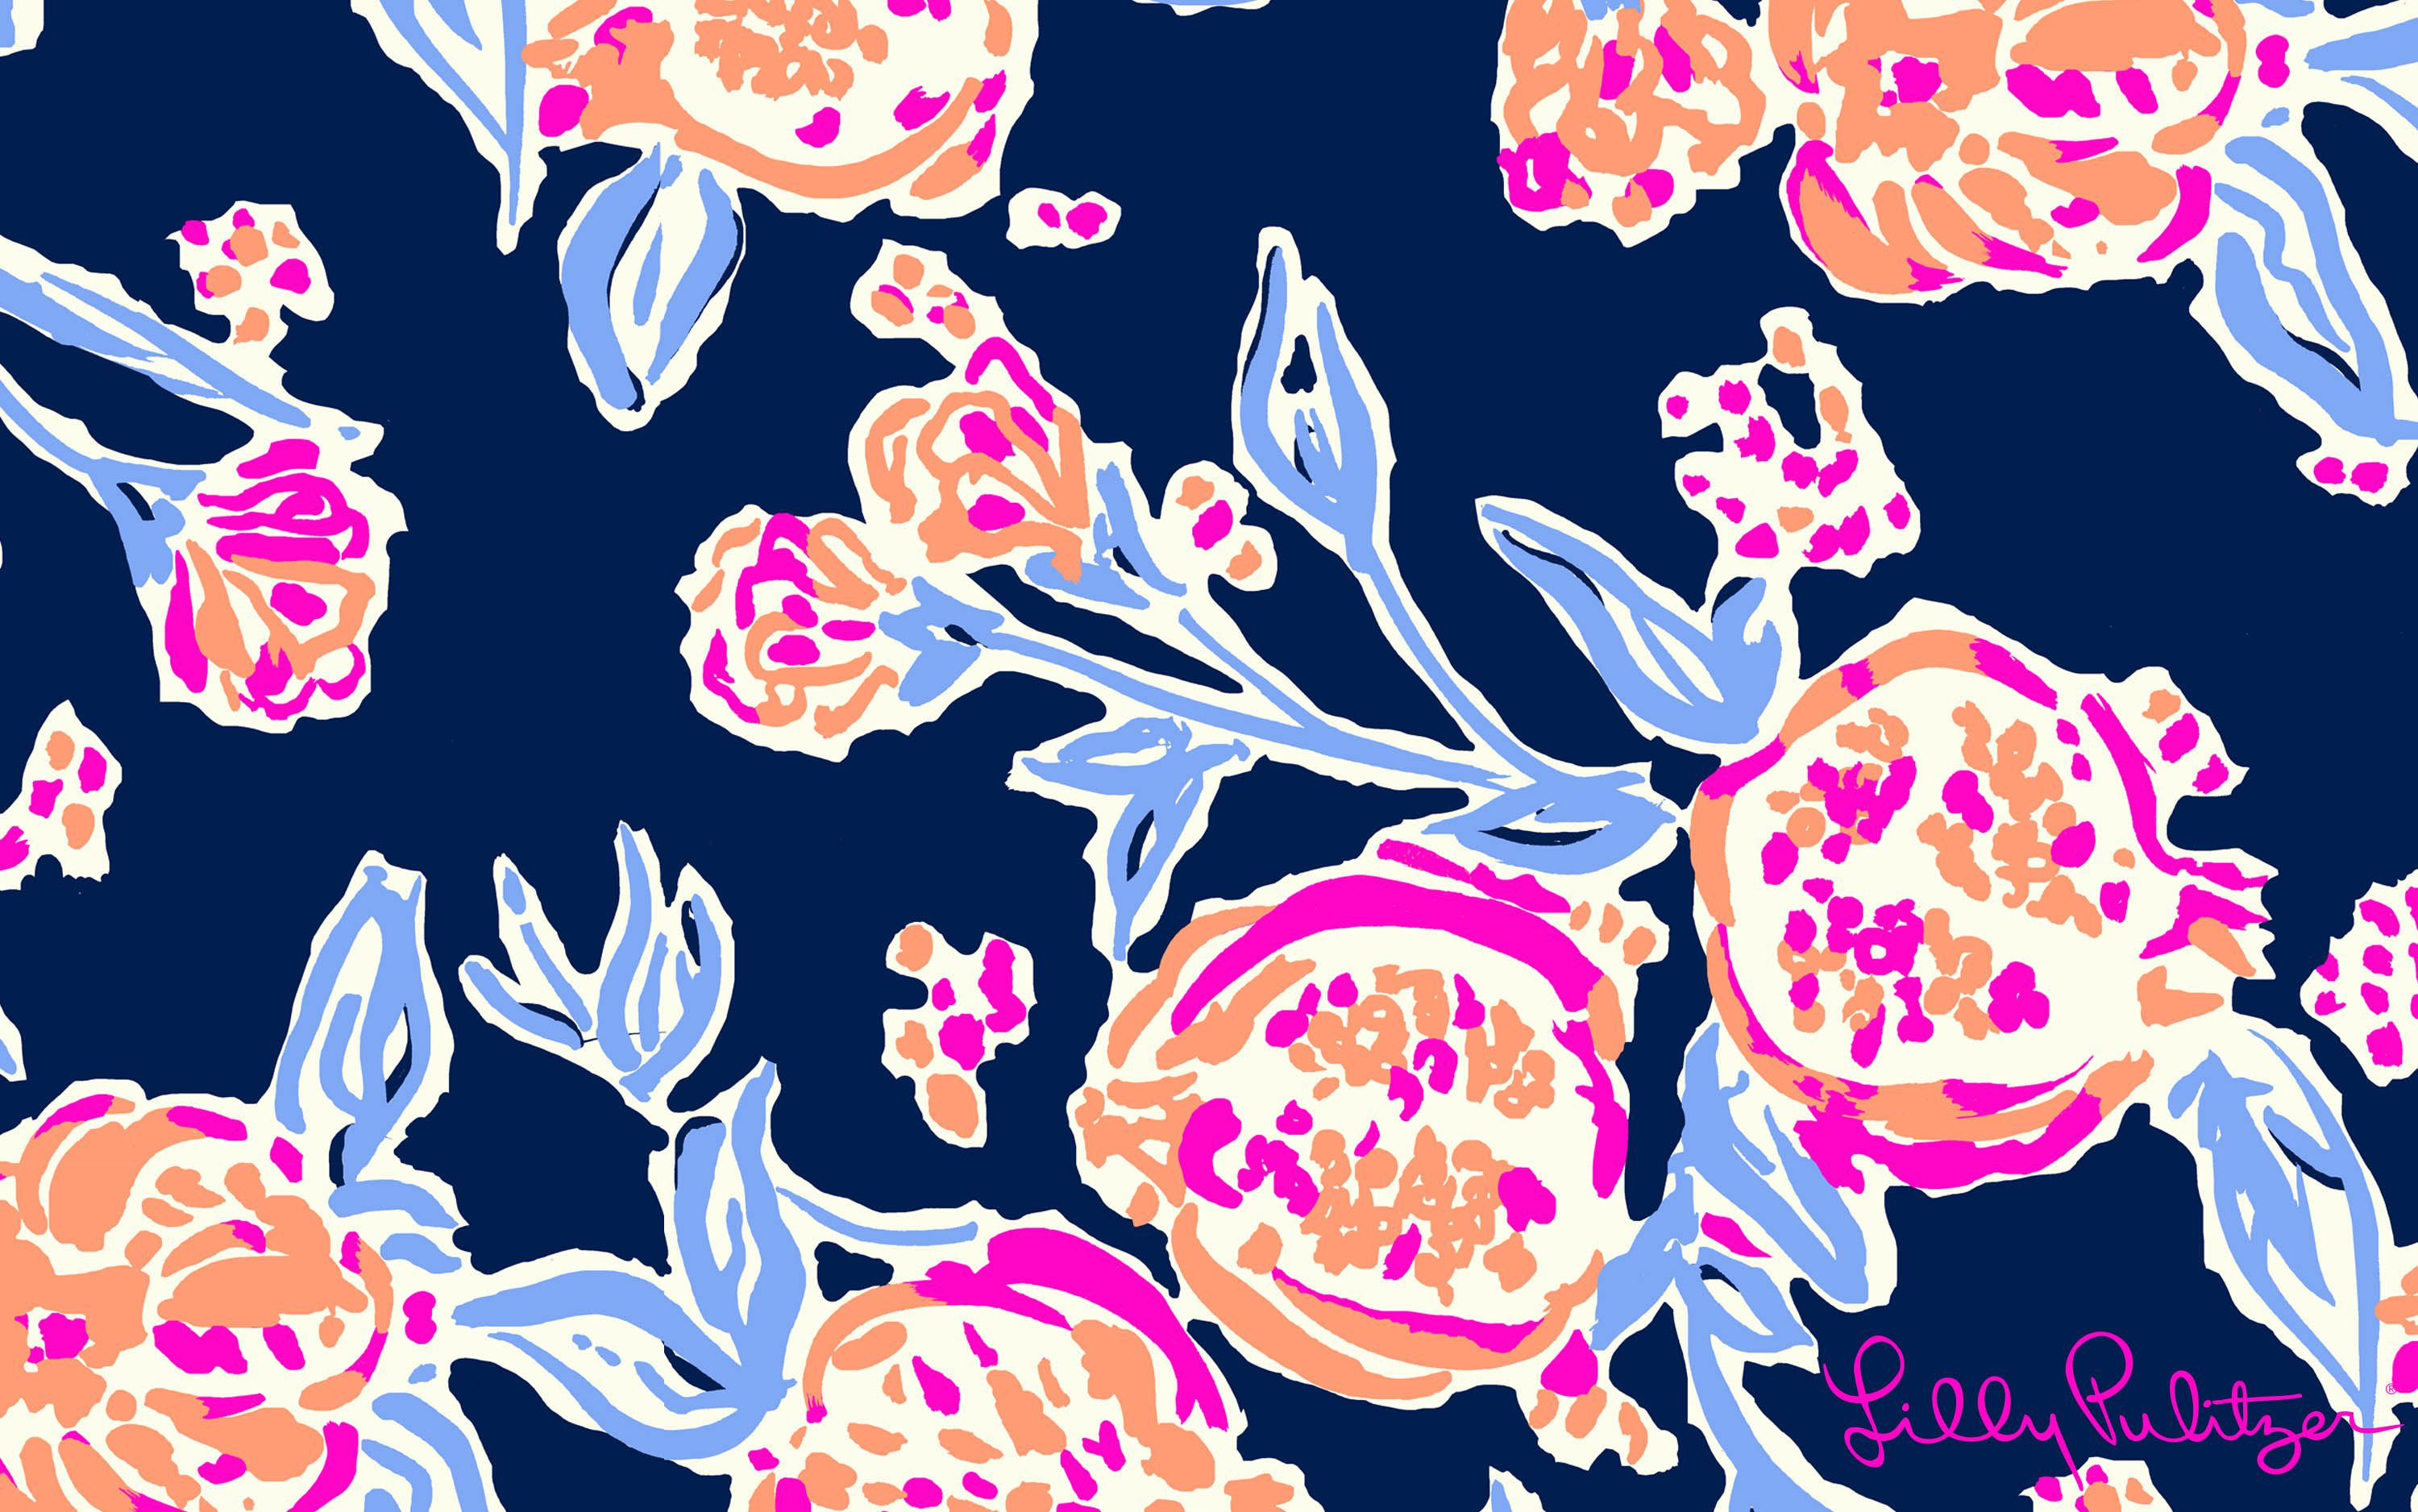 Lillypulitzer Desktop Wallpaper 3 000 1 876 Pixels Lily Pulitzer Wallpaper Lilly Pulitzer Prints Pink Wallpaper Iphone